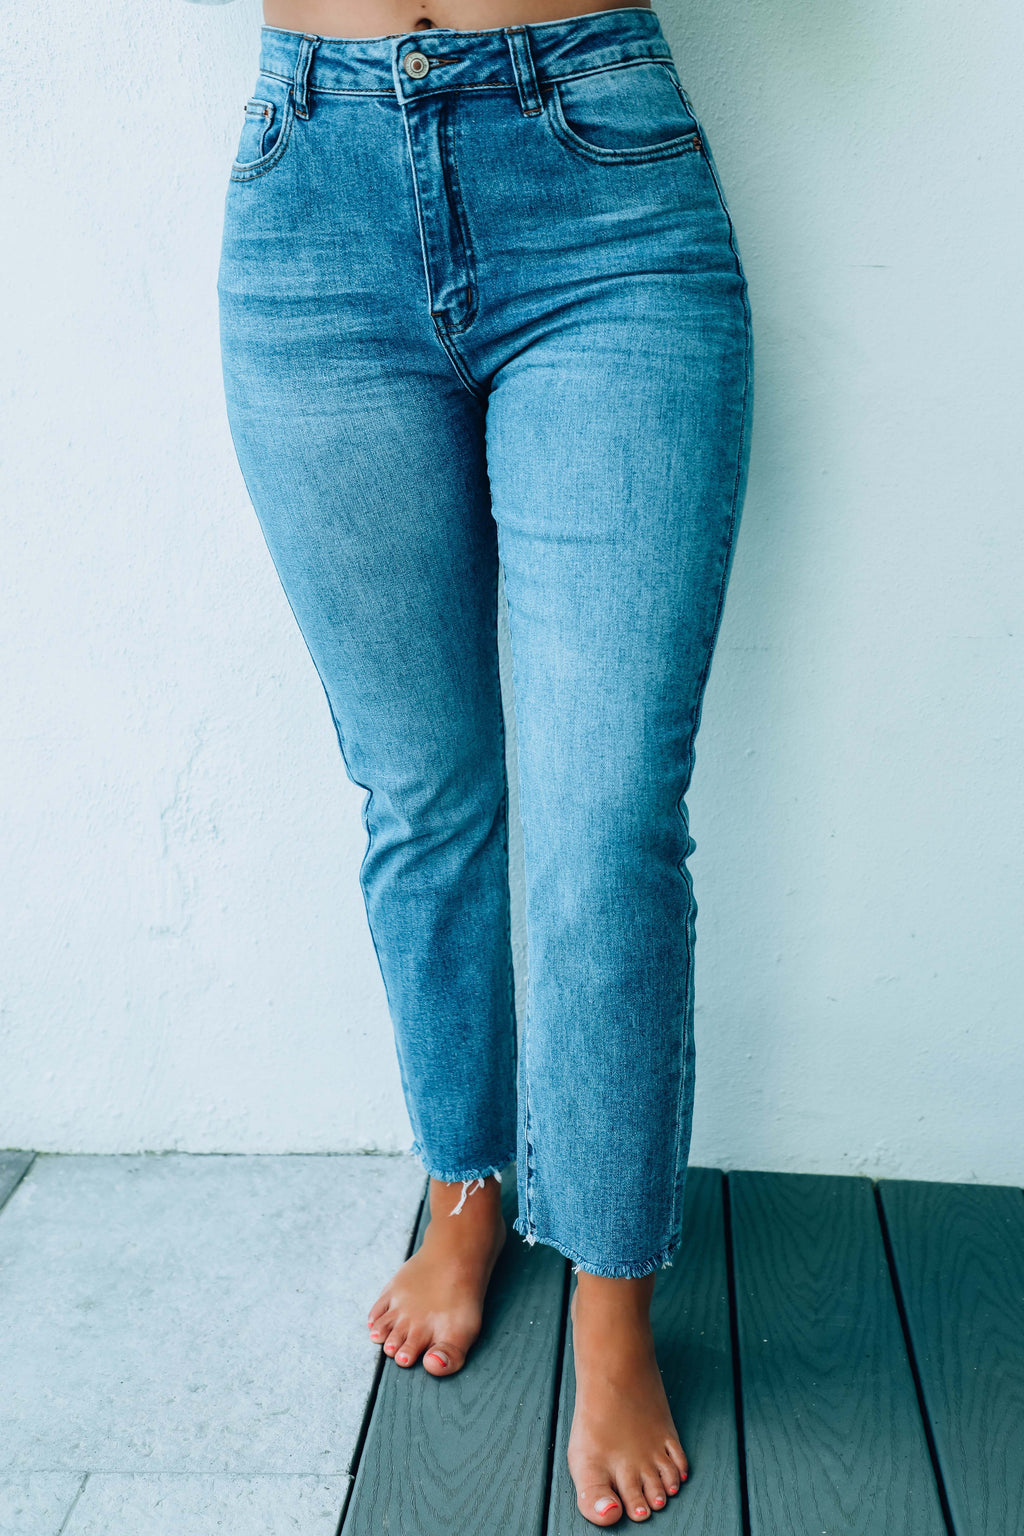 Larimer Square Jeans: Denim